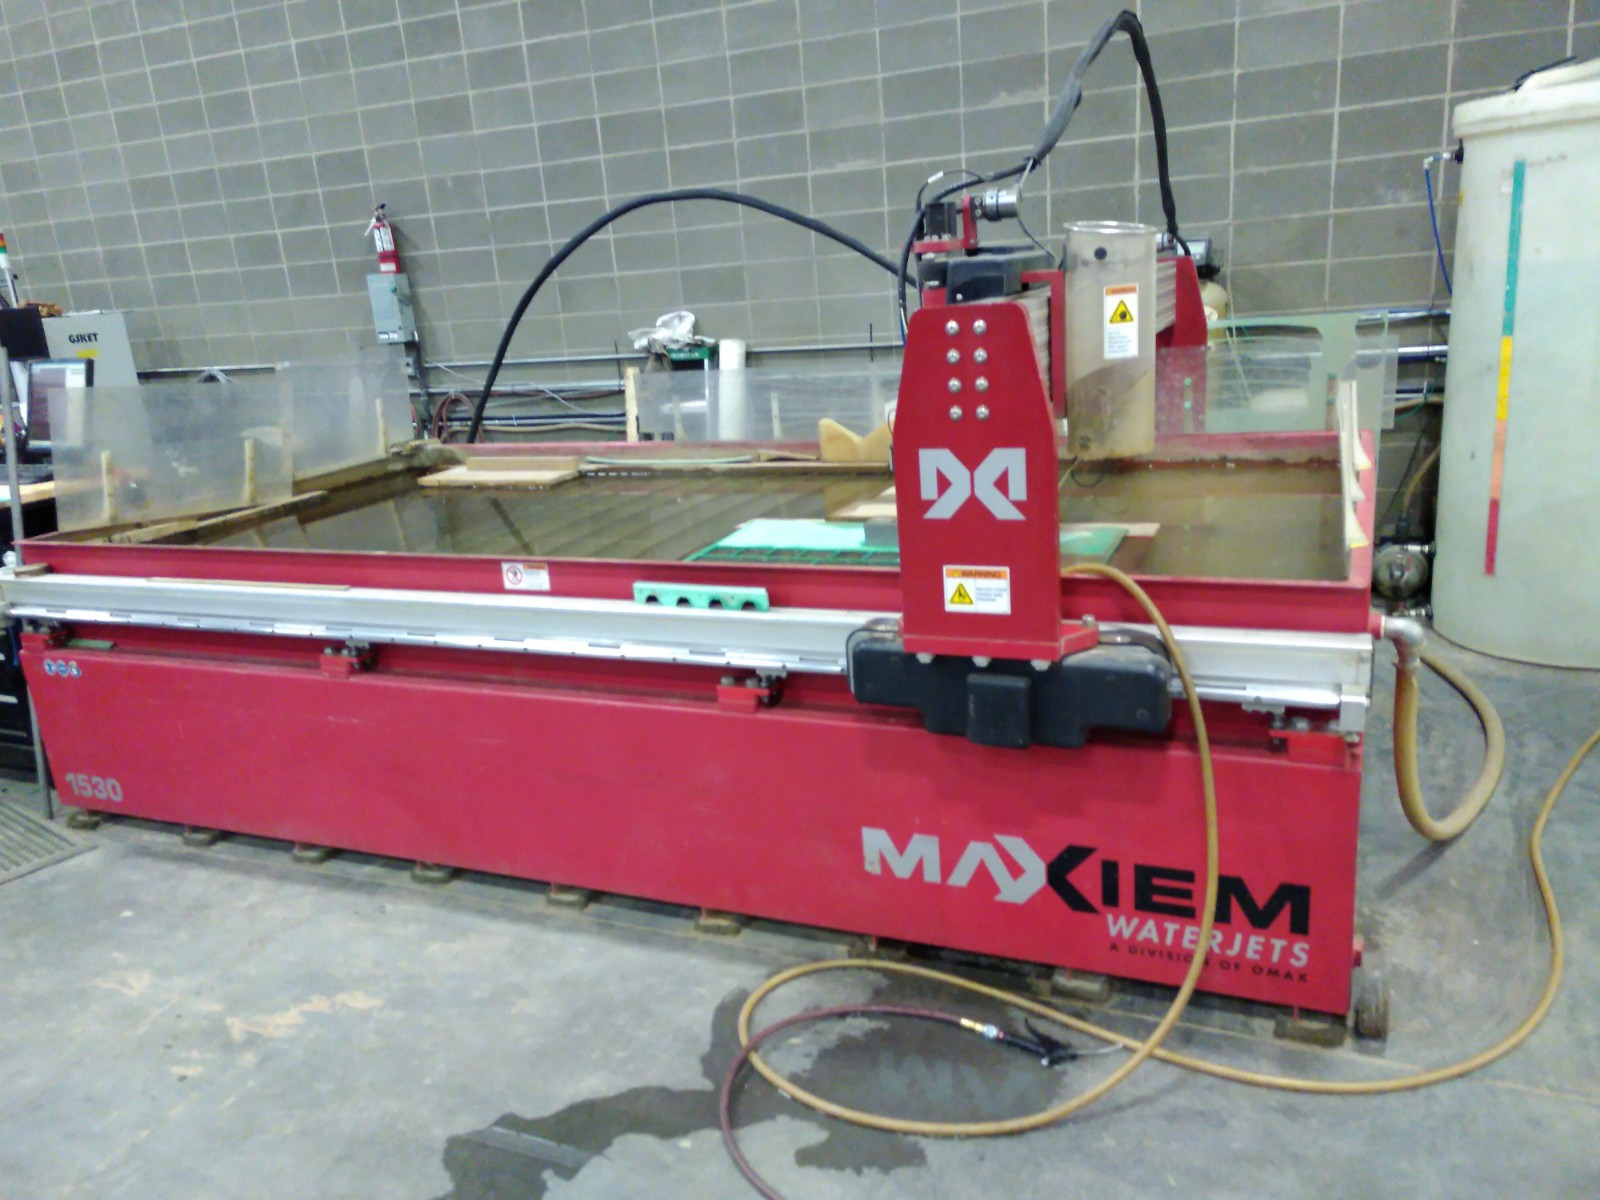 OMAX MAXIEM 1530 WATERJET CUTTING SYSTEM - Digital Equipment